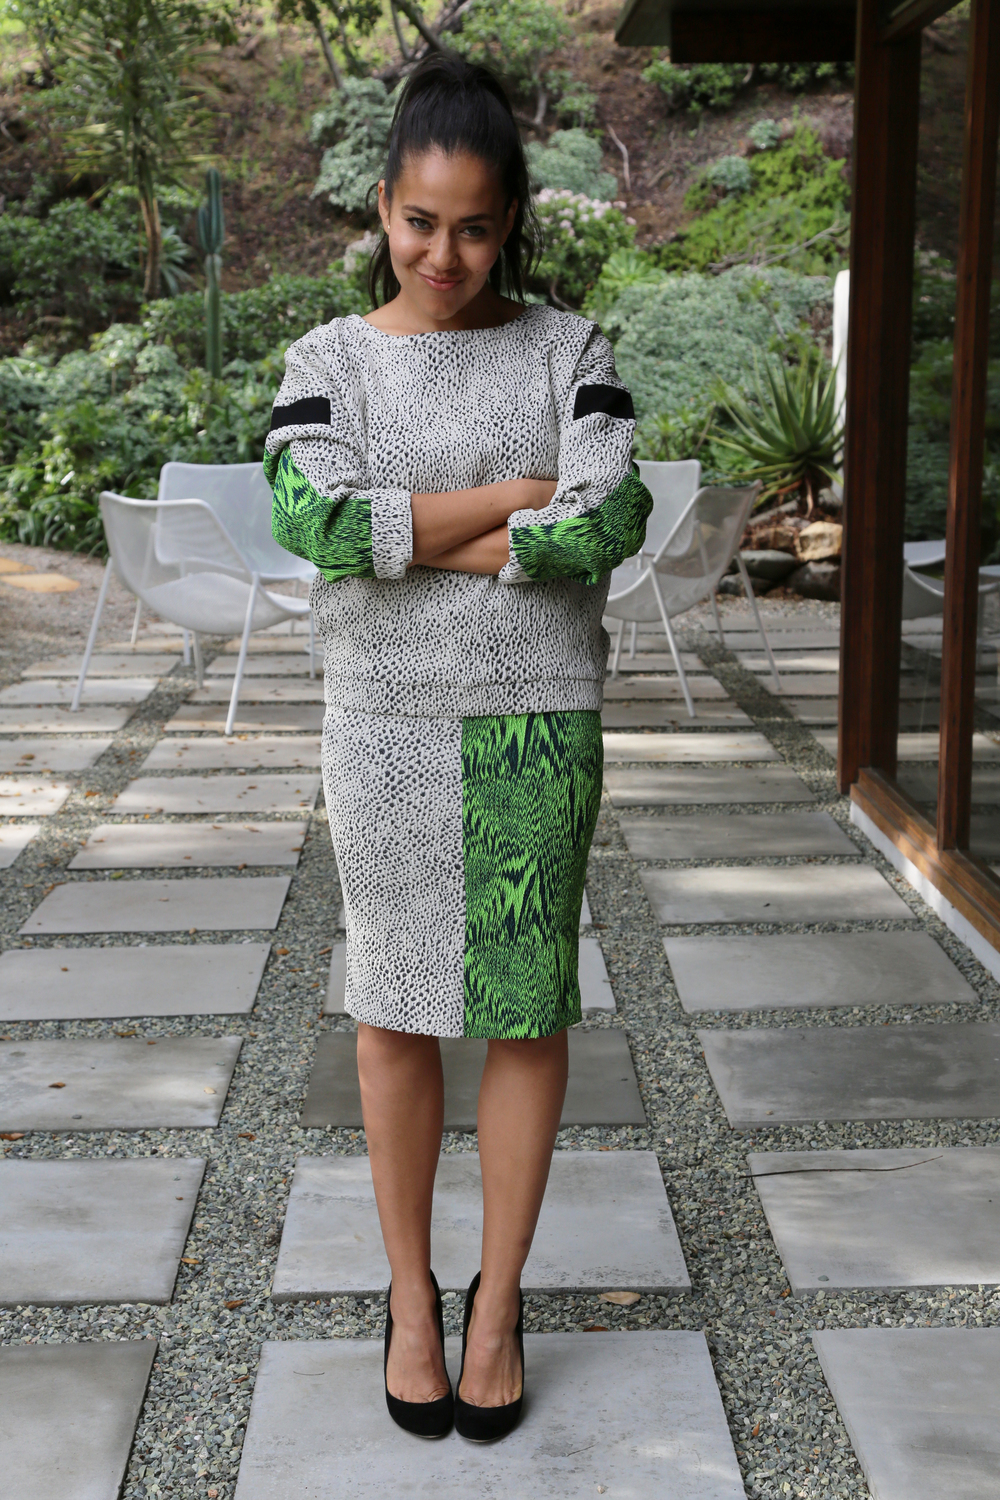 AVELON-PENCIL-SKIRT-BOLD-PRINT-BLACK-GREEN-VANESSA-BELETIC-LOS-ANGELES.JPG.JPG